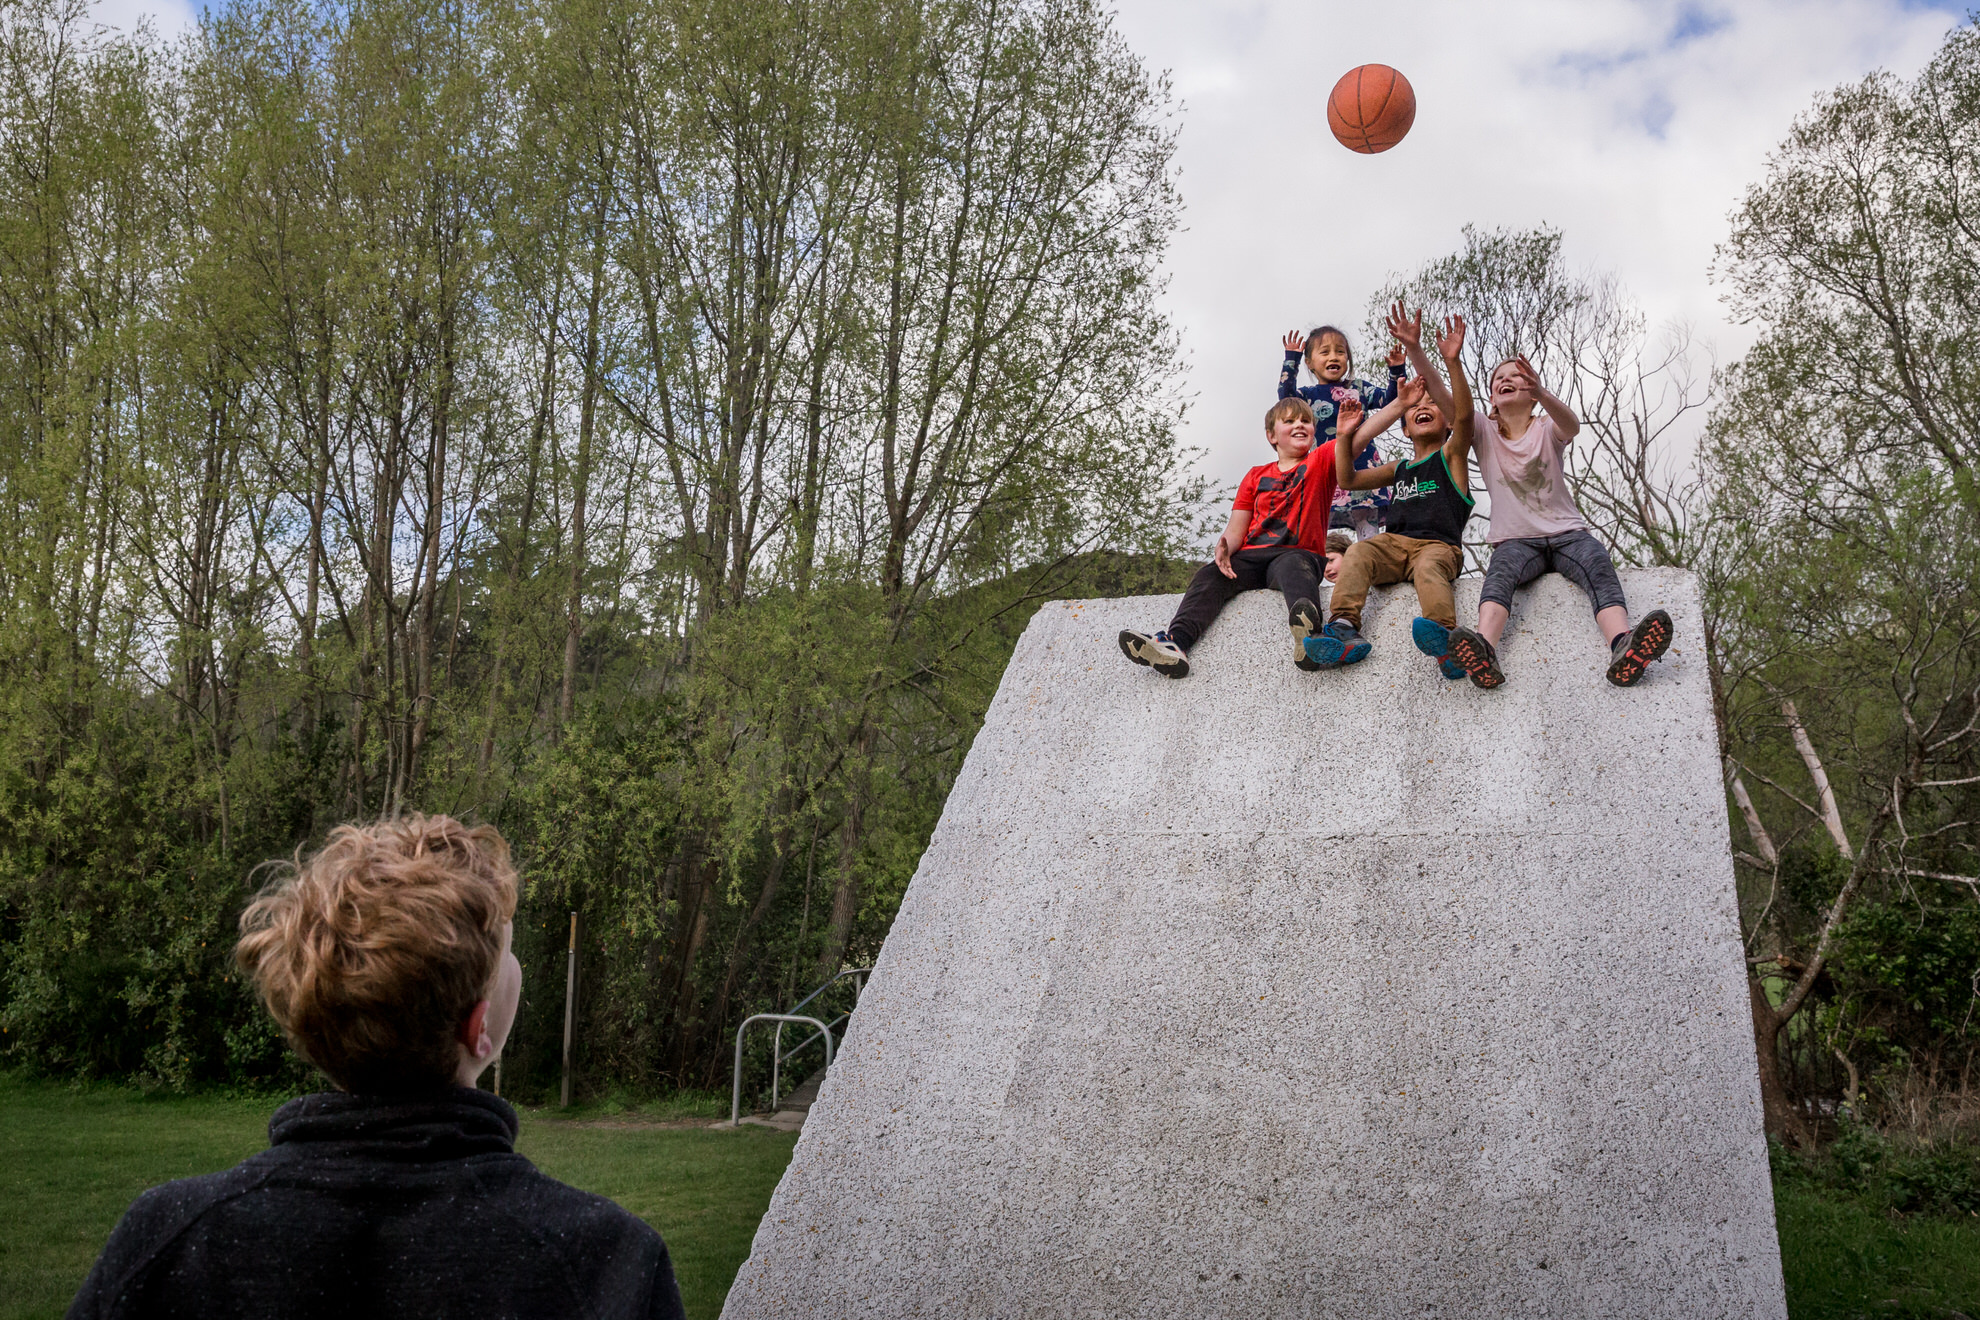 Boy throwing a ball to a group of children sitting on top of a wall